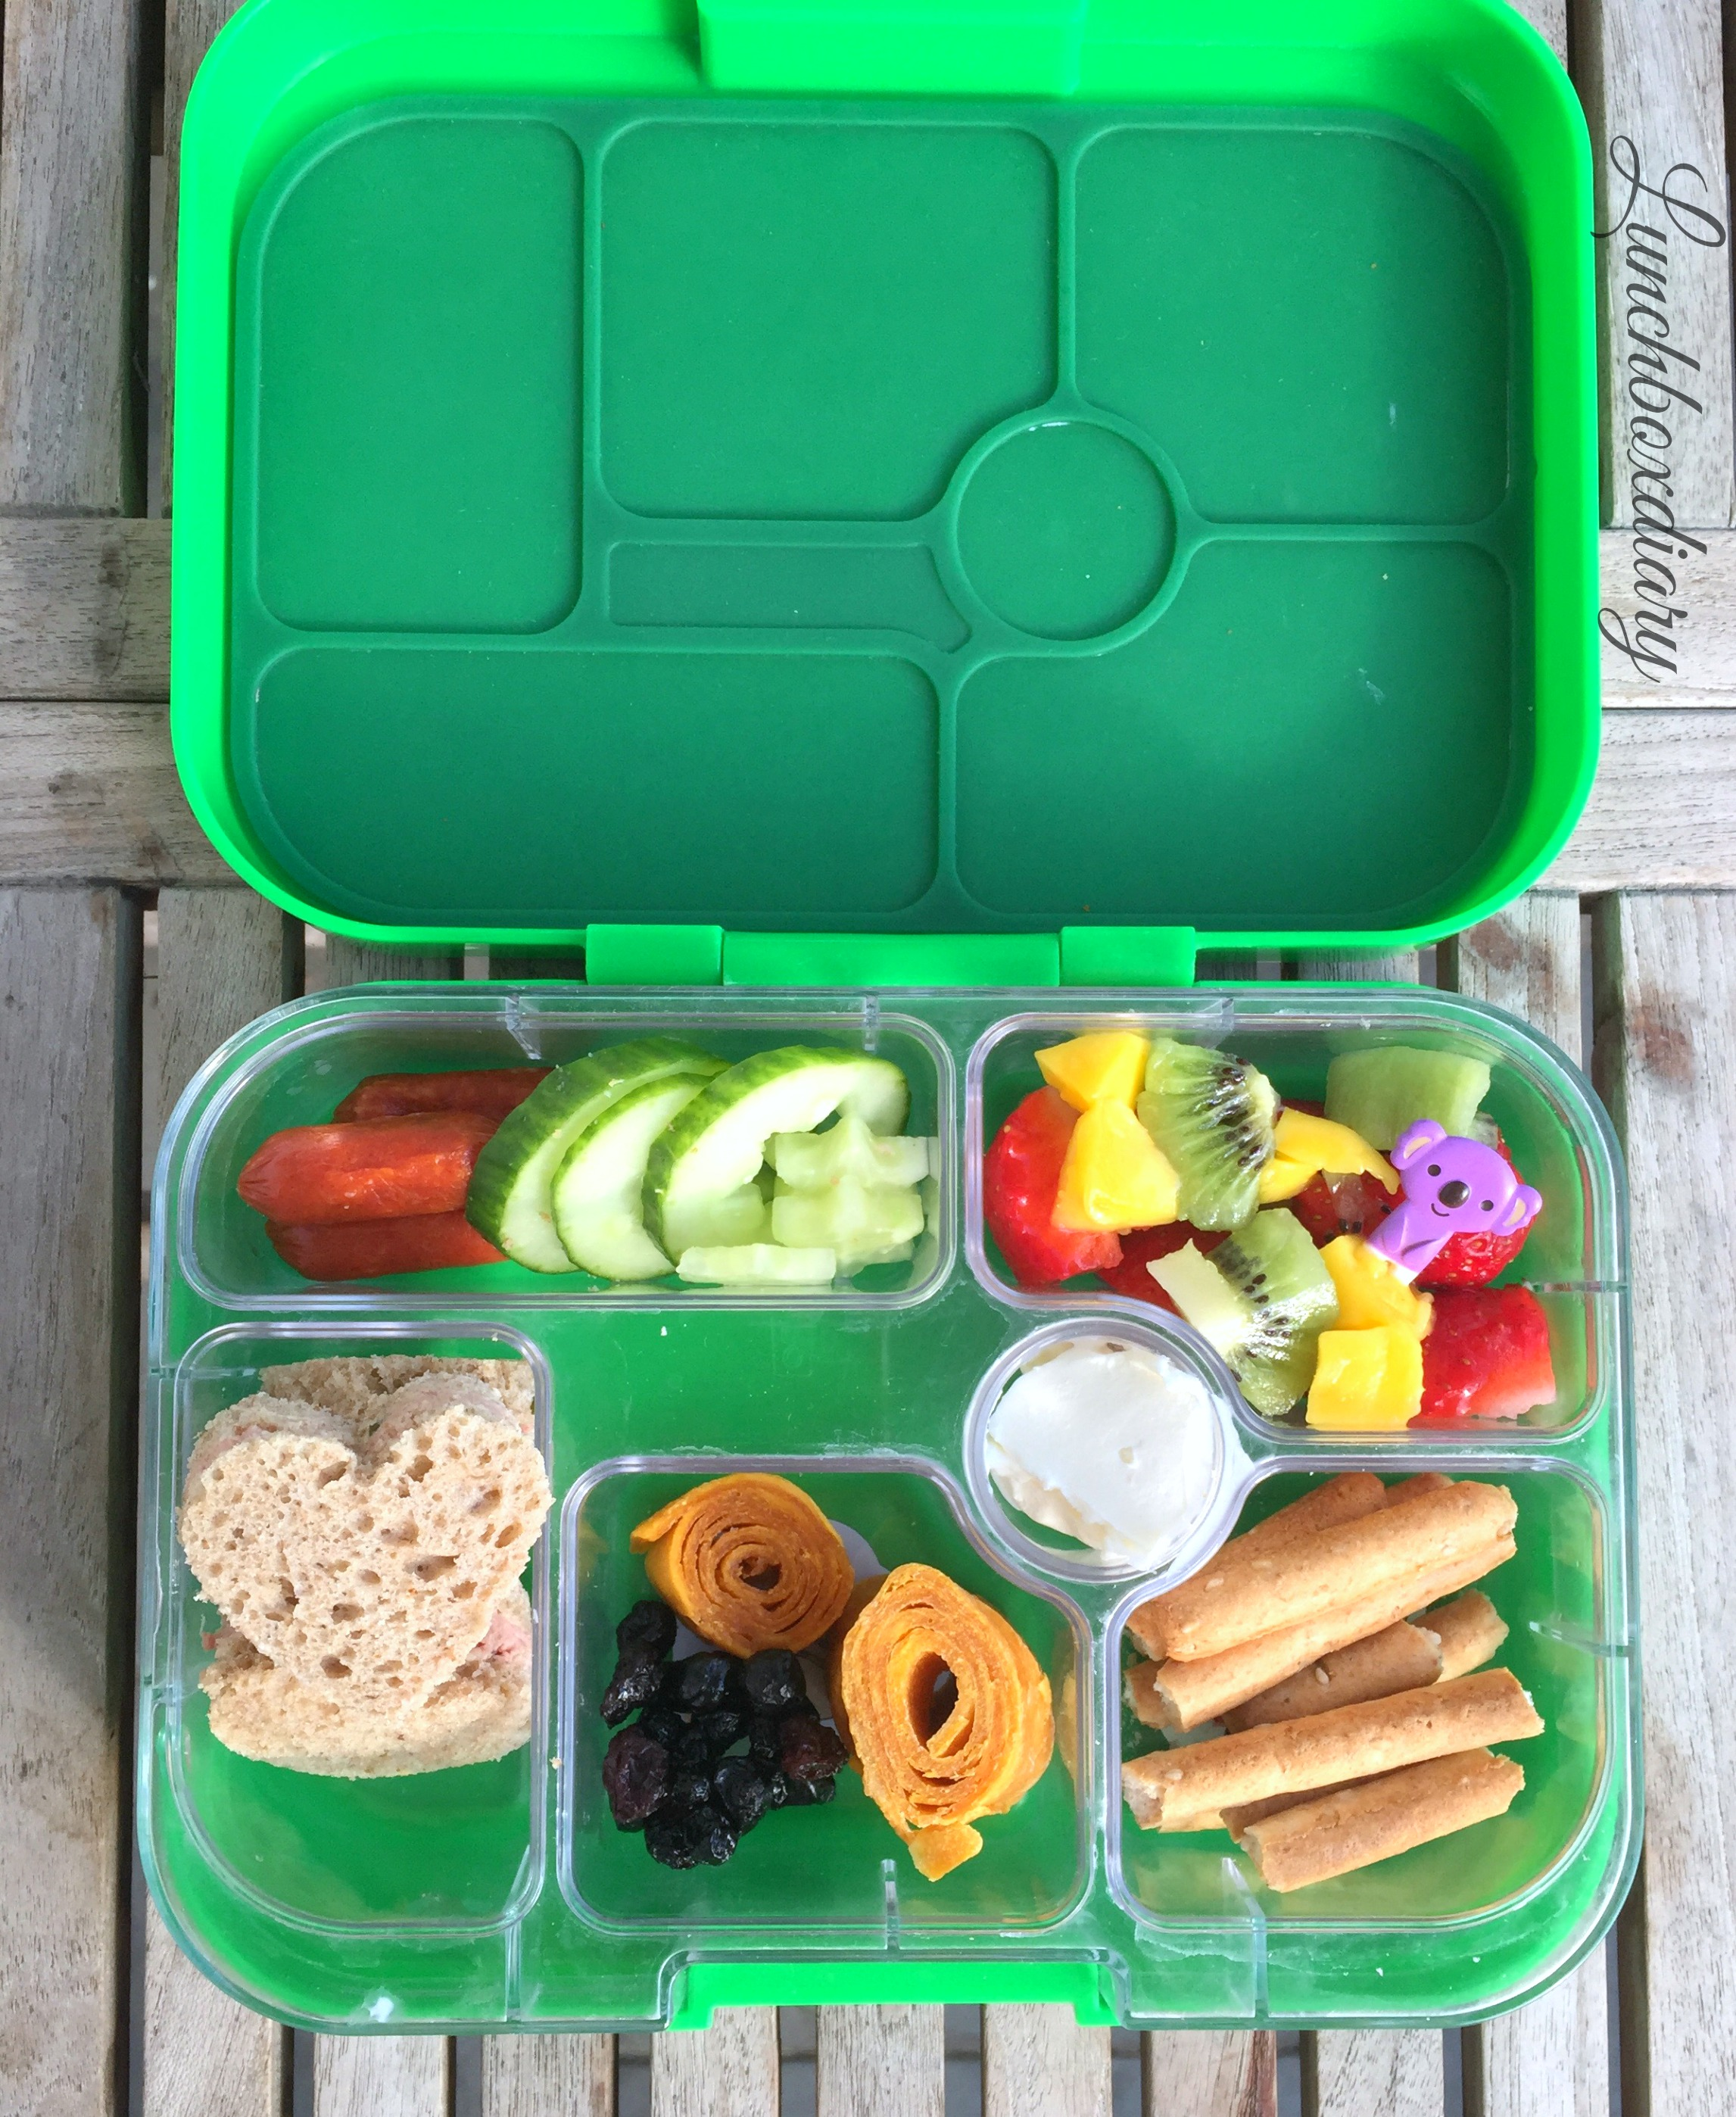 yumbox bentobox test lunchbox bentoinspiration. Black Bedroom Furniture Sets. Home Design Ideas